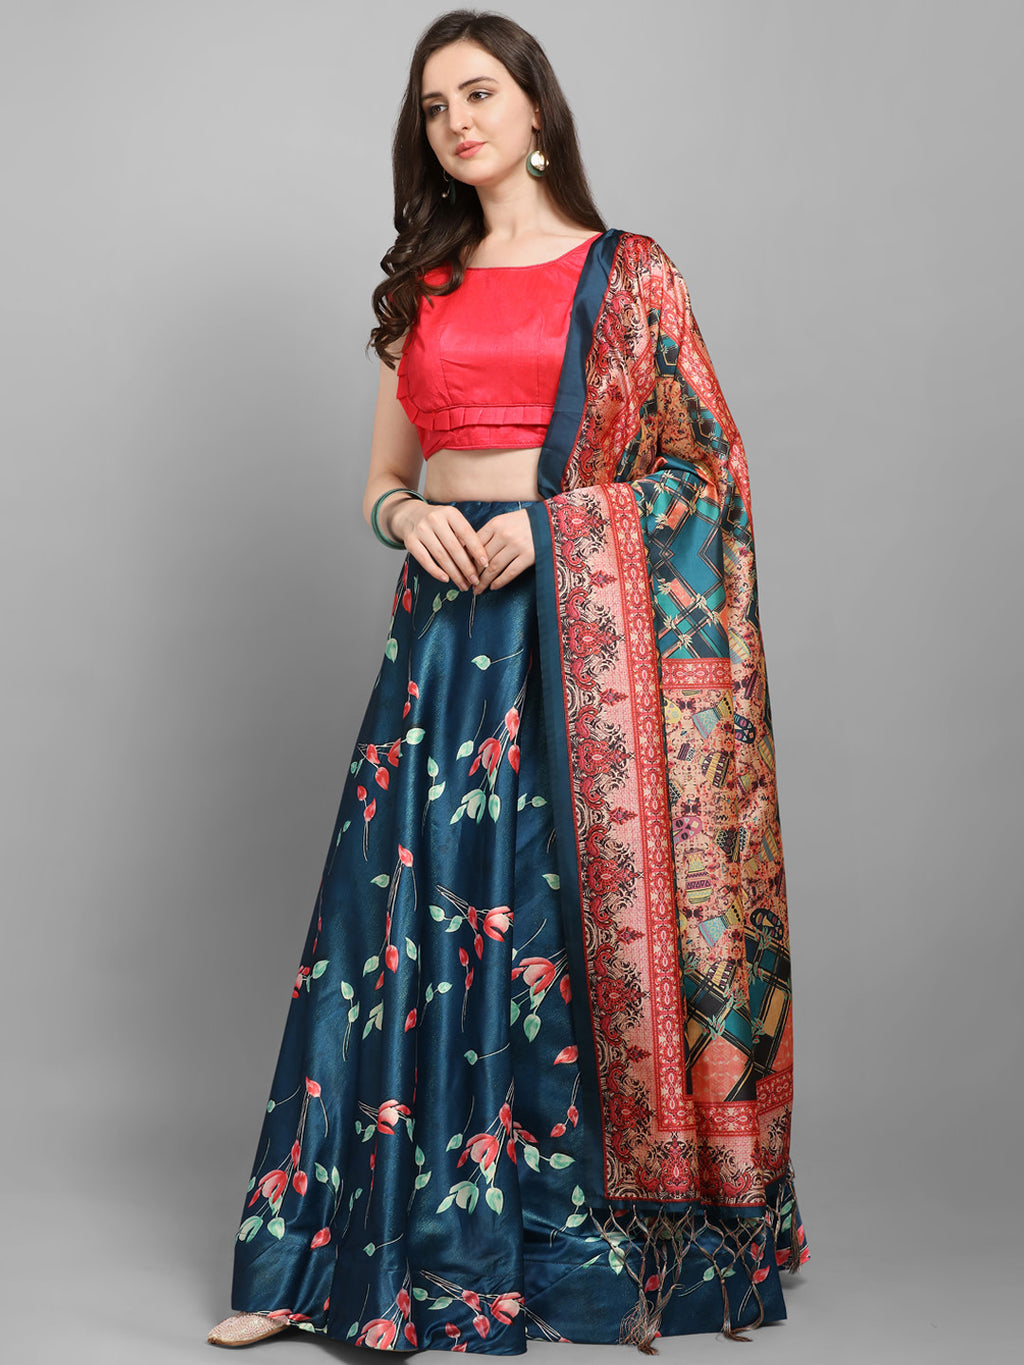 Teal Blue & Pink Solid Unstitched Lehenga & Blouse with Dupatta